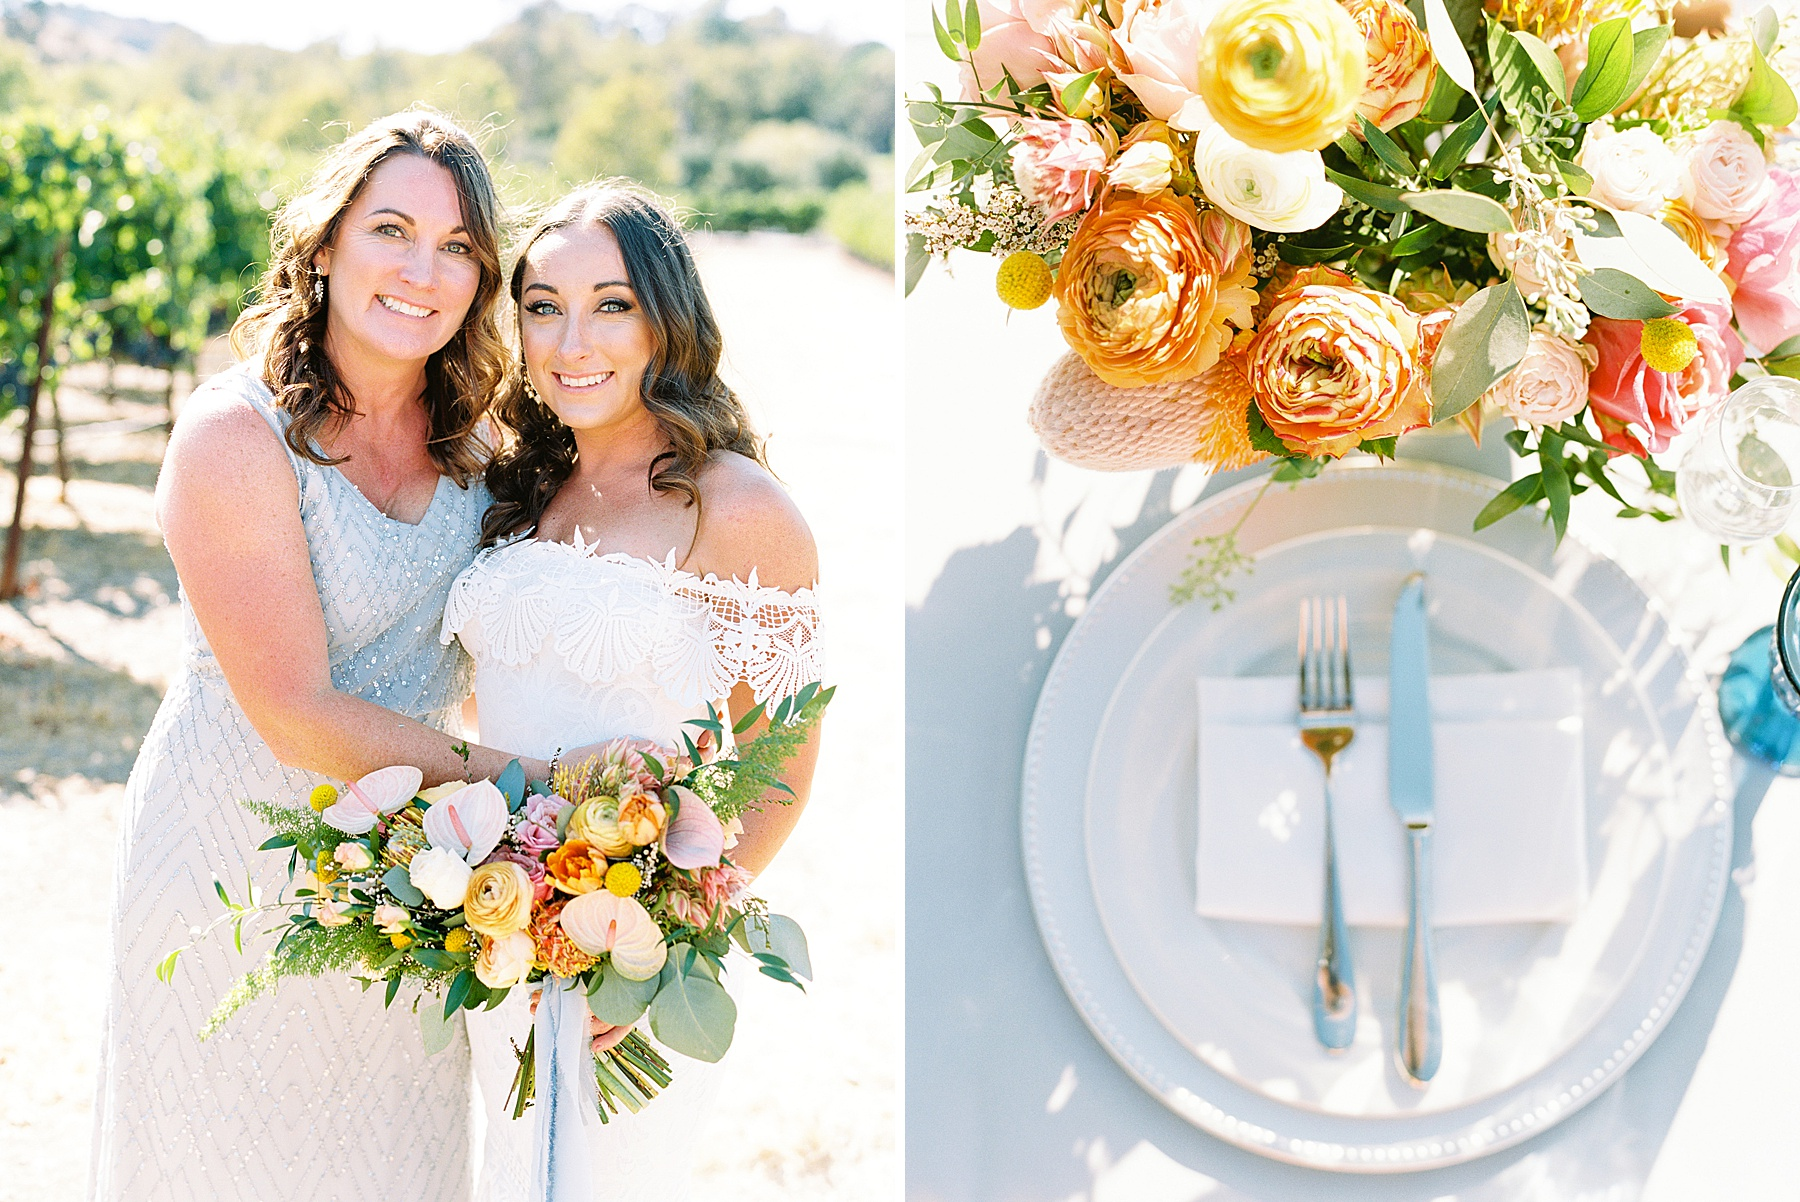 Wente Wedding with A Tropical Color Palette - Ashley & Mike - Featured on Inspired by This - Ashley Baumgartner_0031.jpg